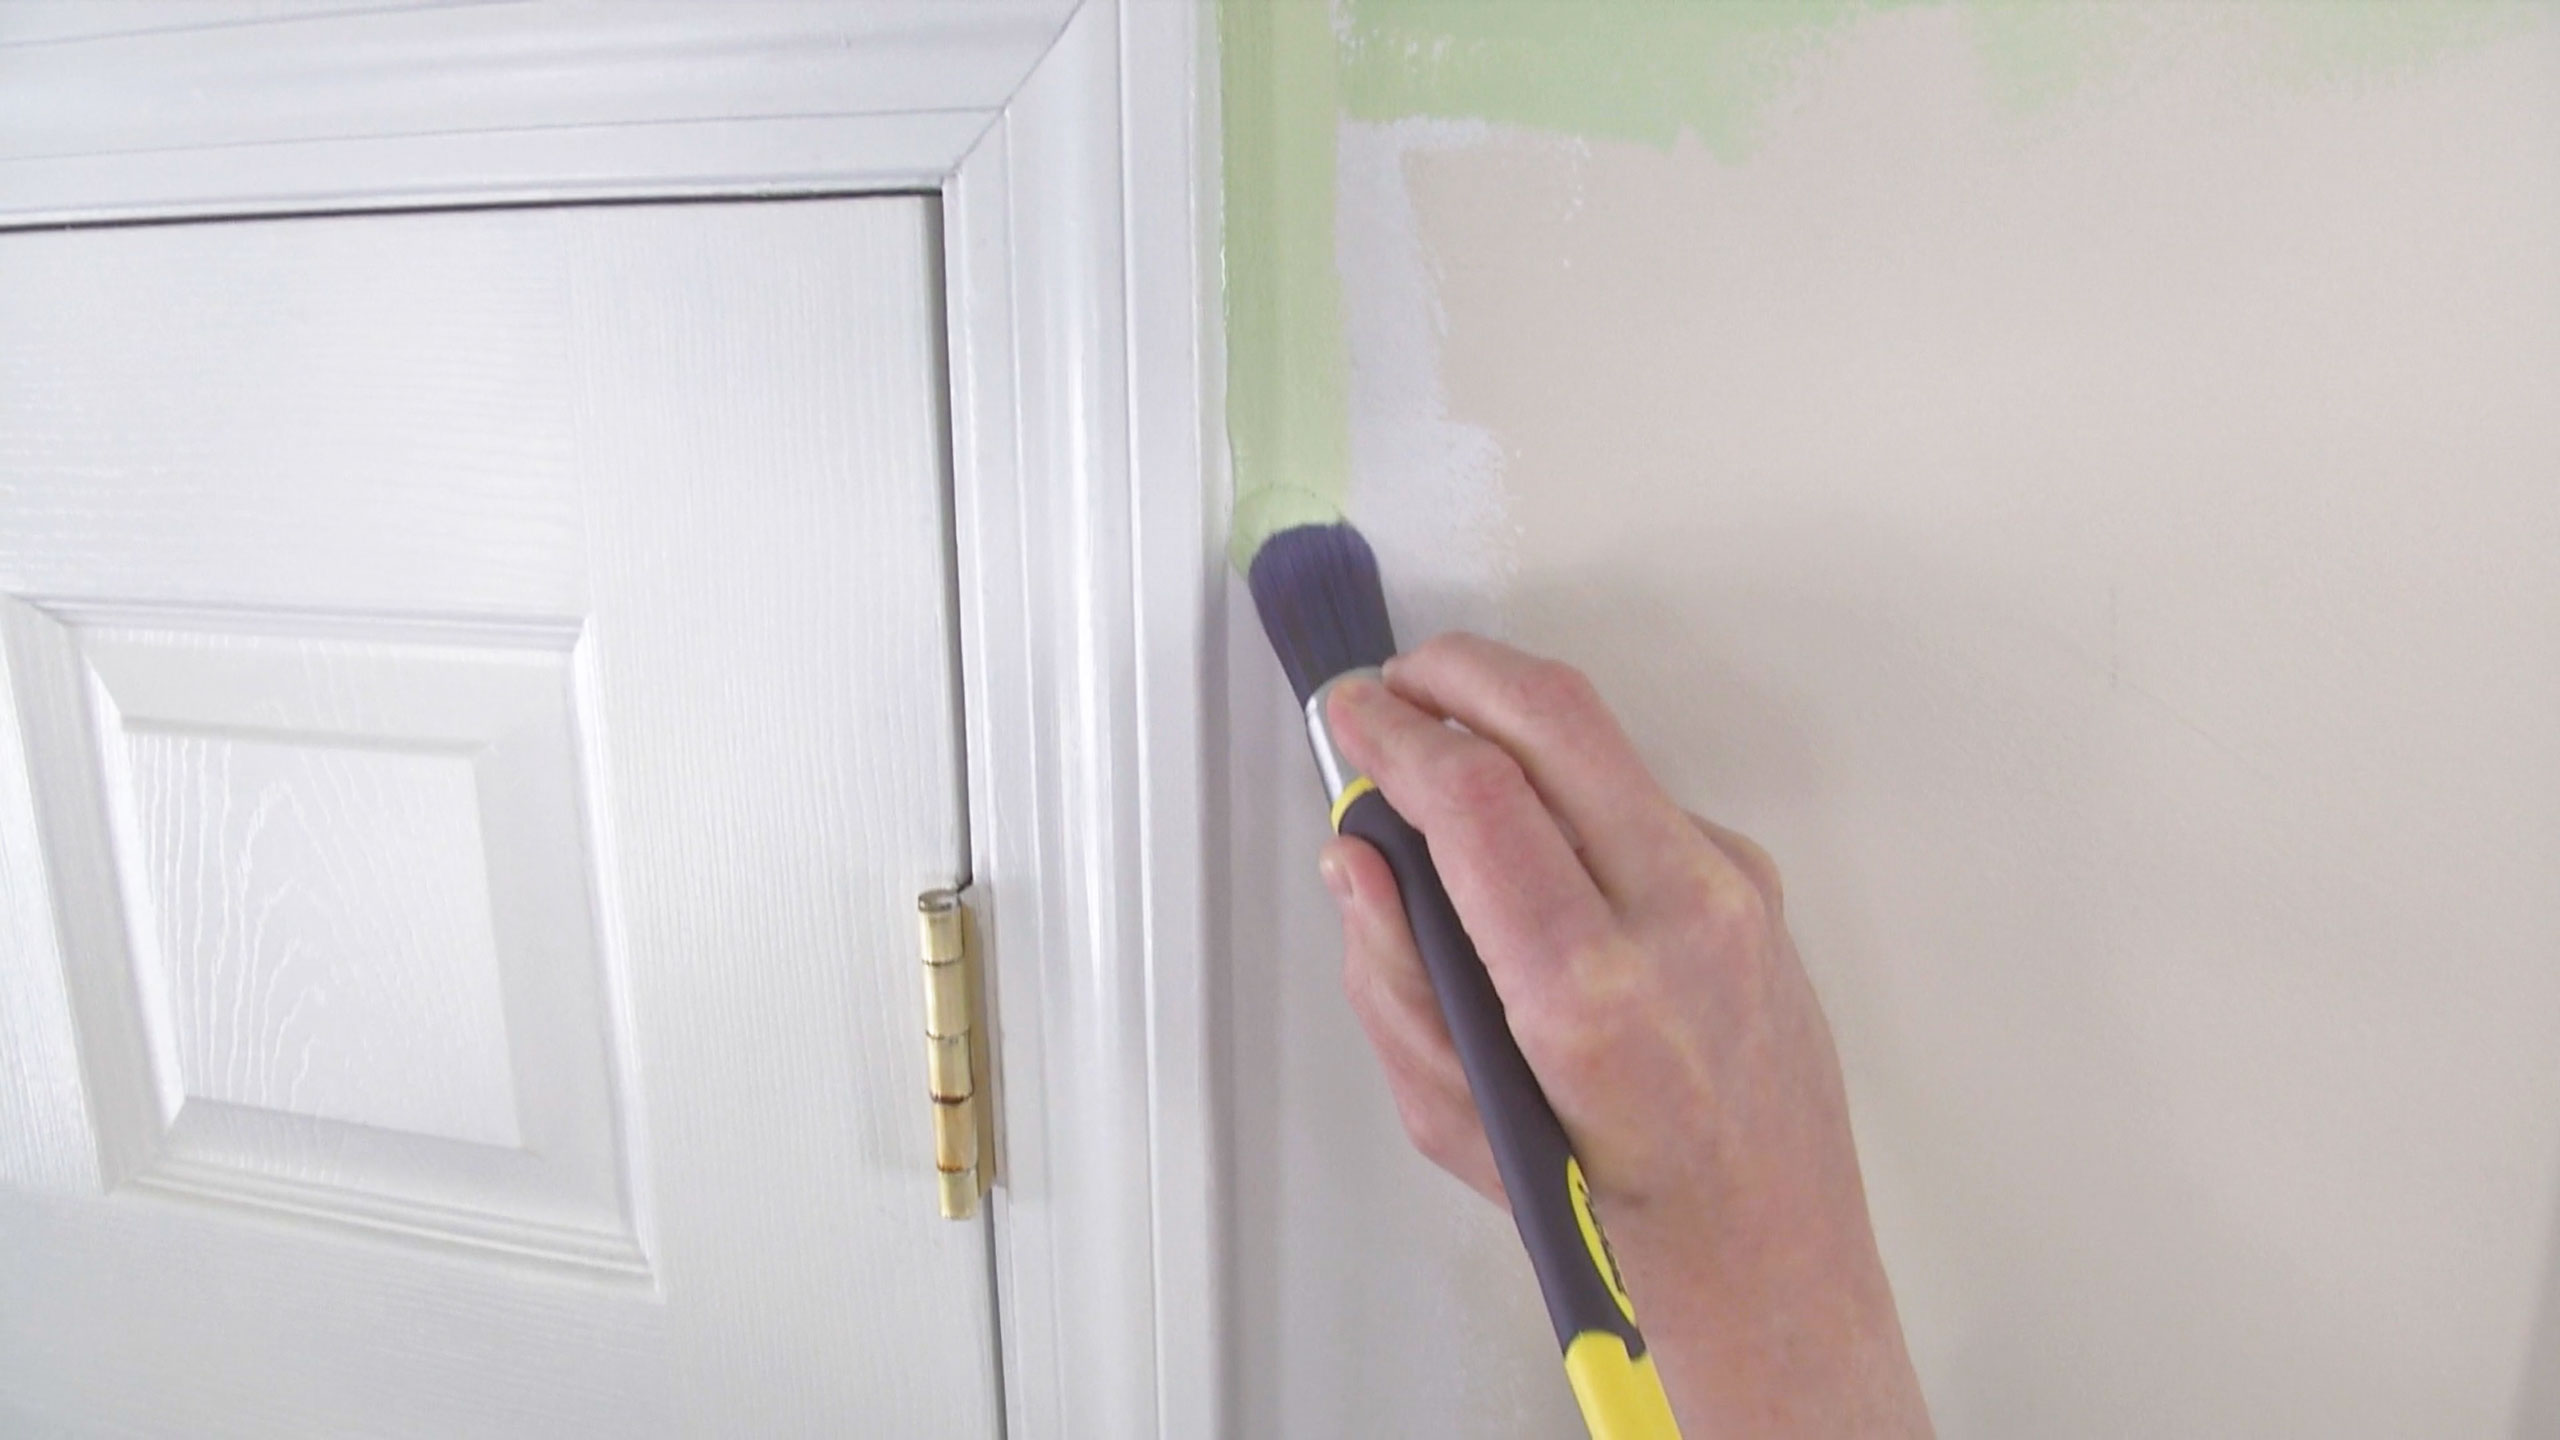 Paint brush with green paint on wall